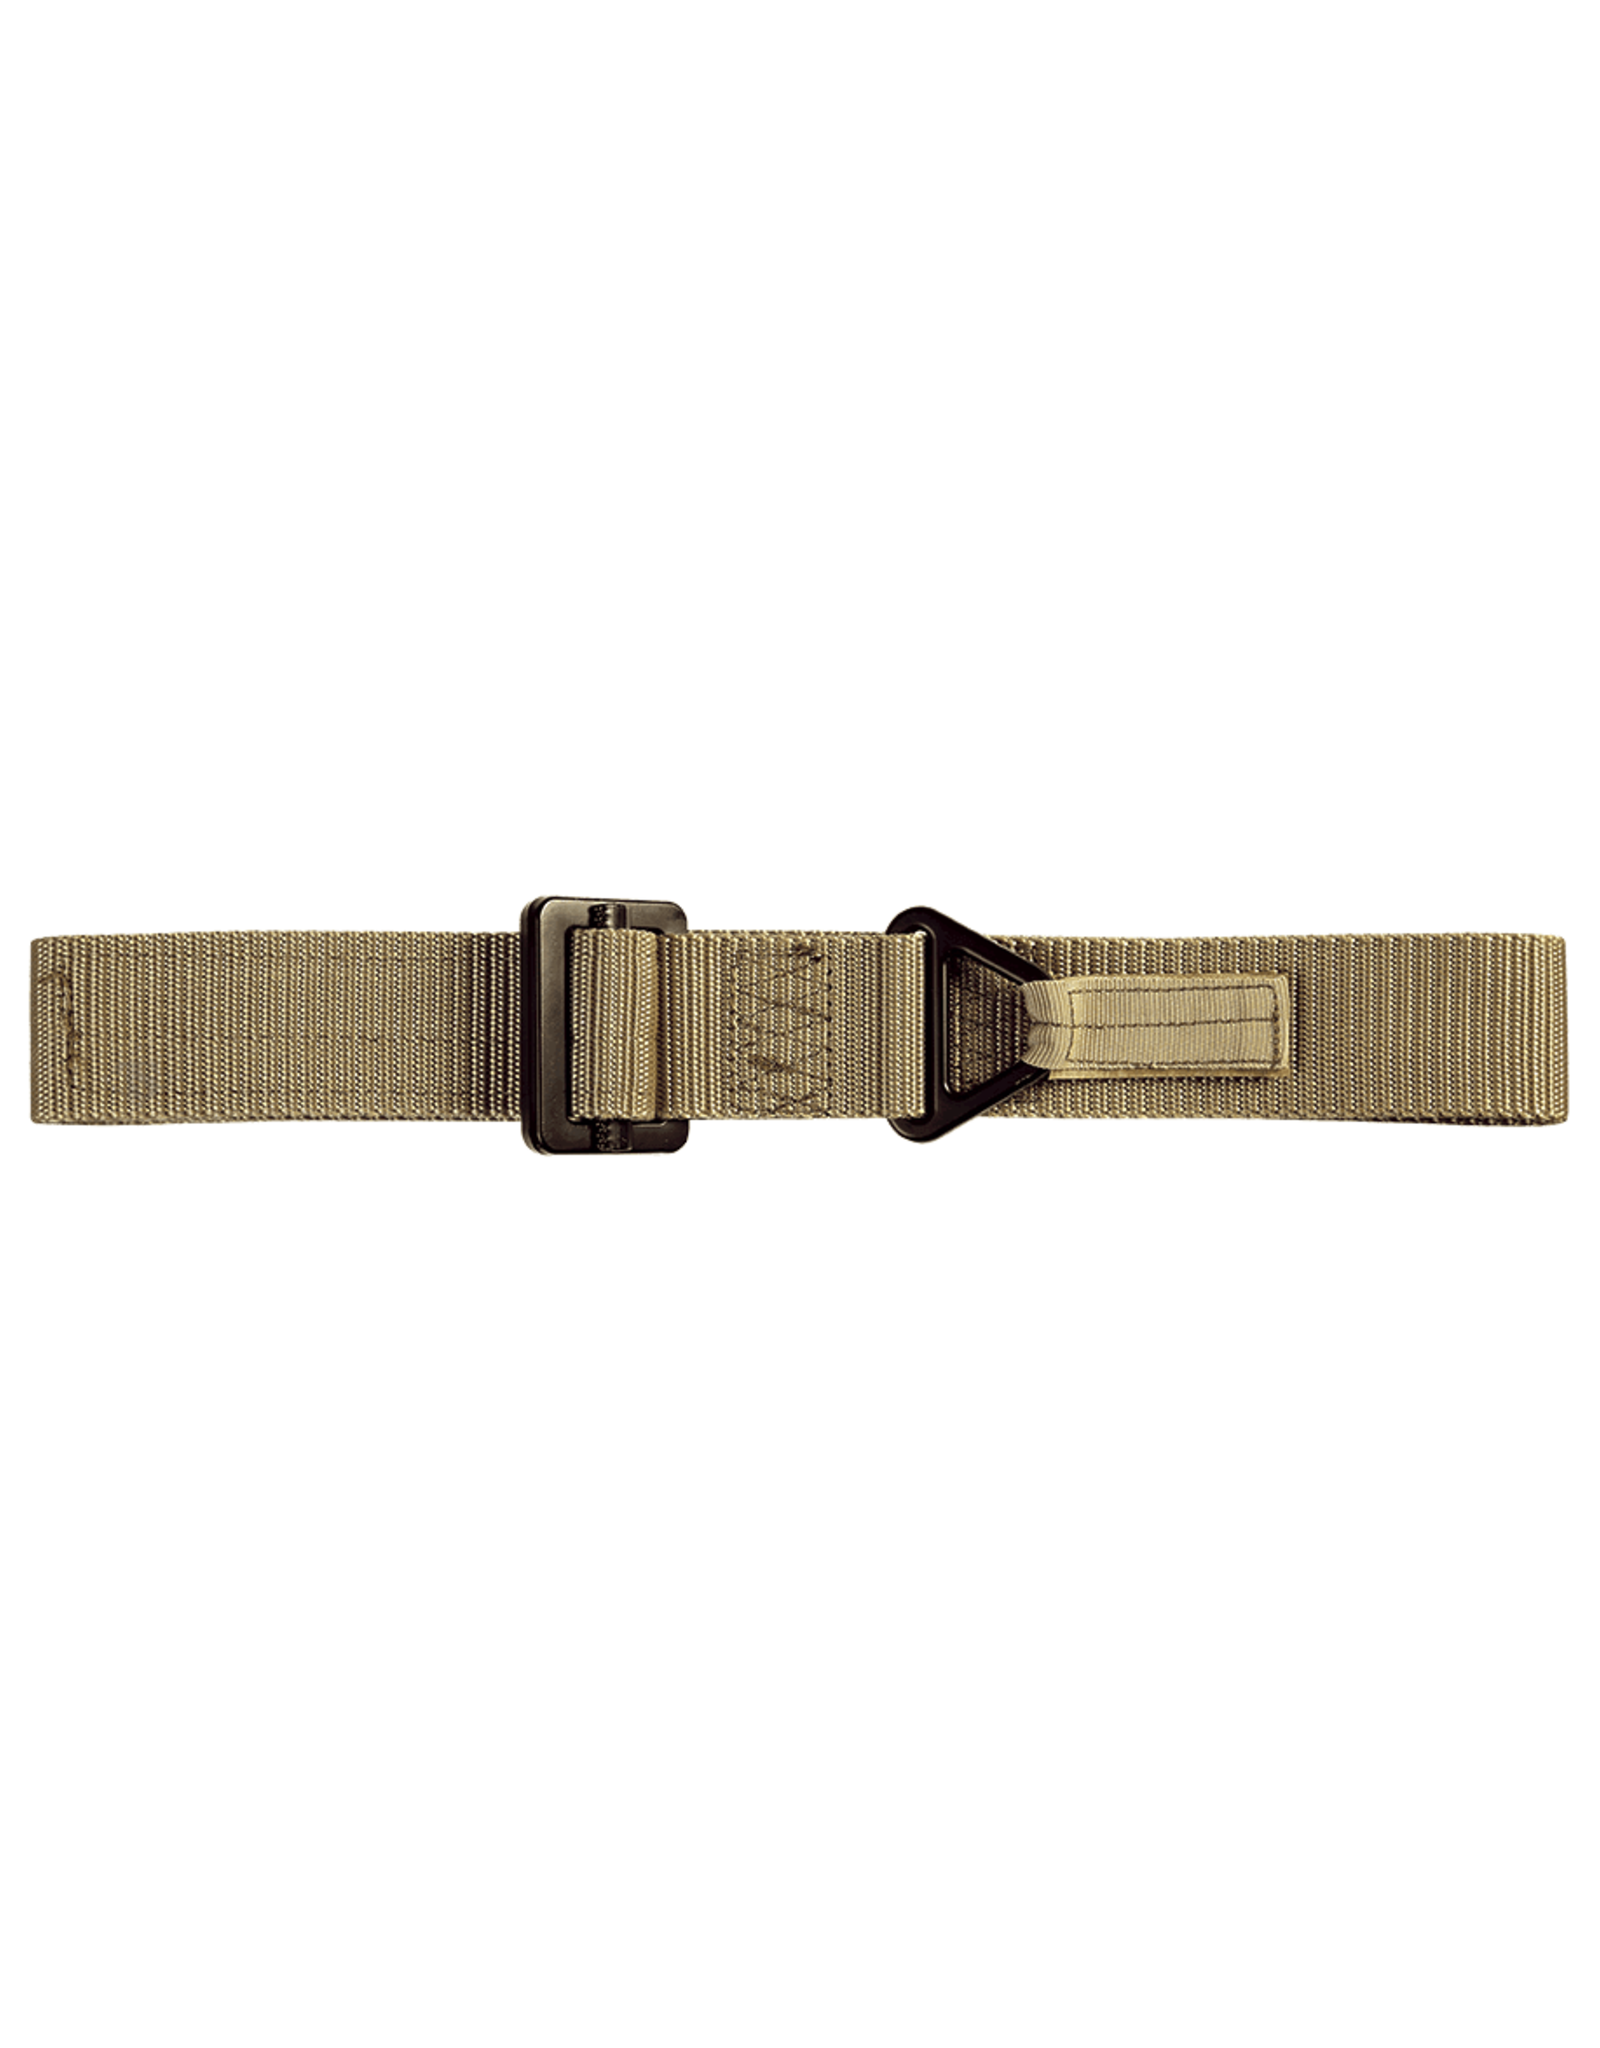 5IVE STAR GEAR HD TACTICAL RIGGERS BELT